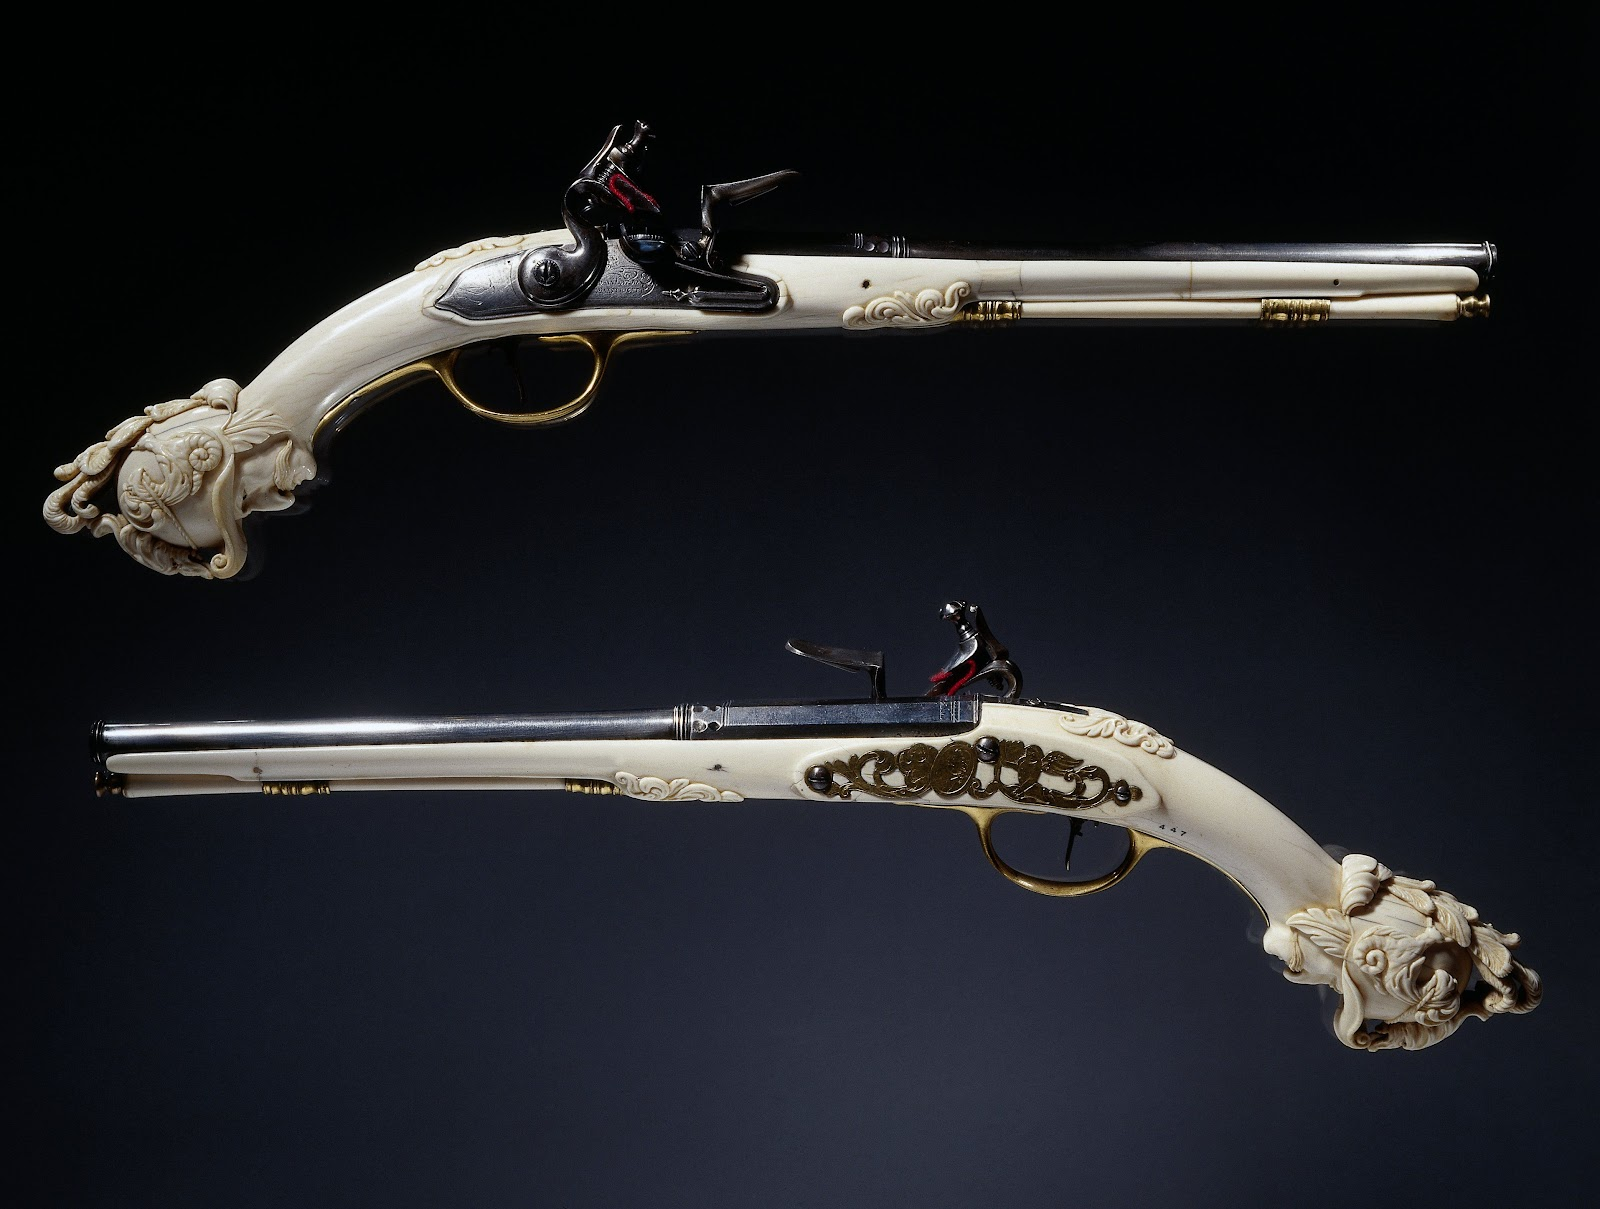 Two flintlock pistols from the Rijksmuseum's collection of antique weapons.